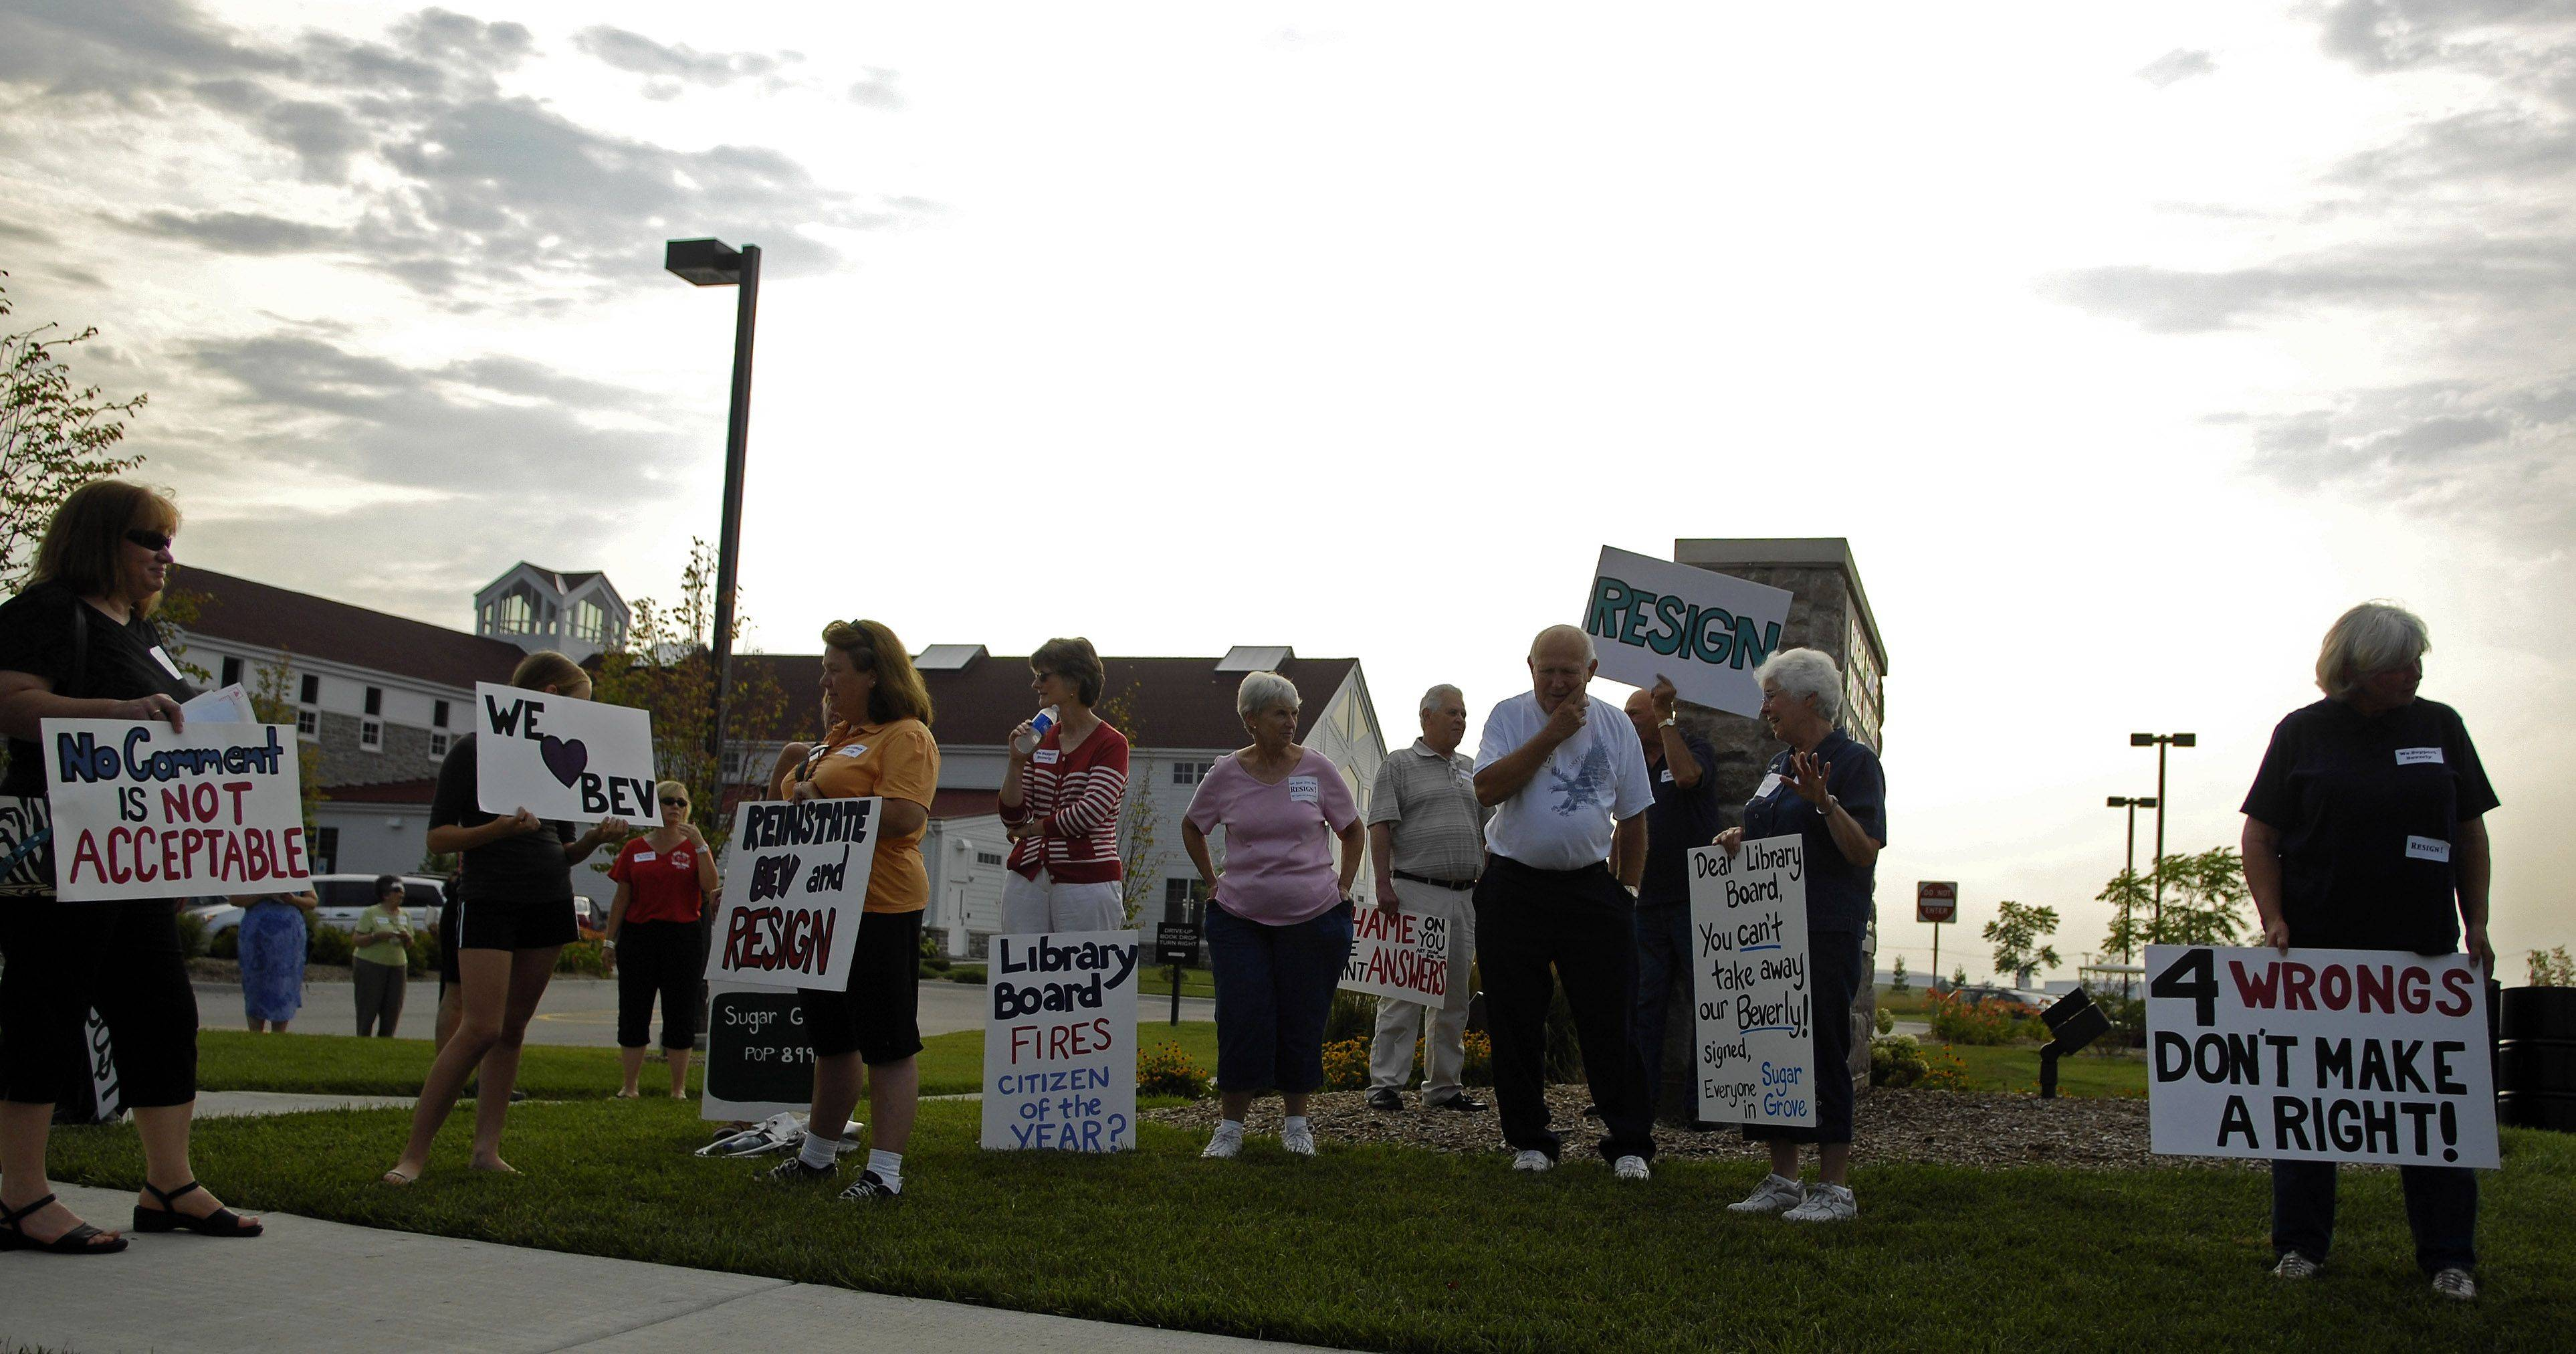 People protested the July firing of the Sugar Grove Library director. On Saturday, the library had a forum about what the community wants of any new director it hires.